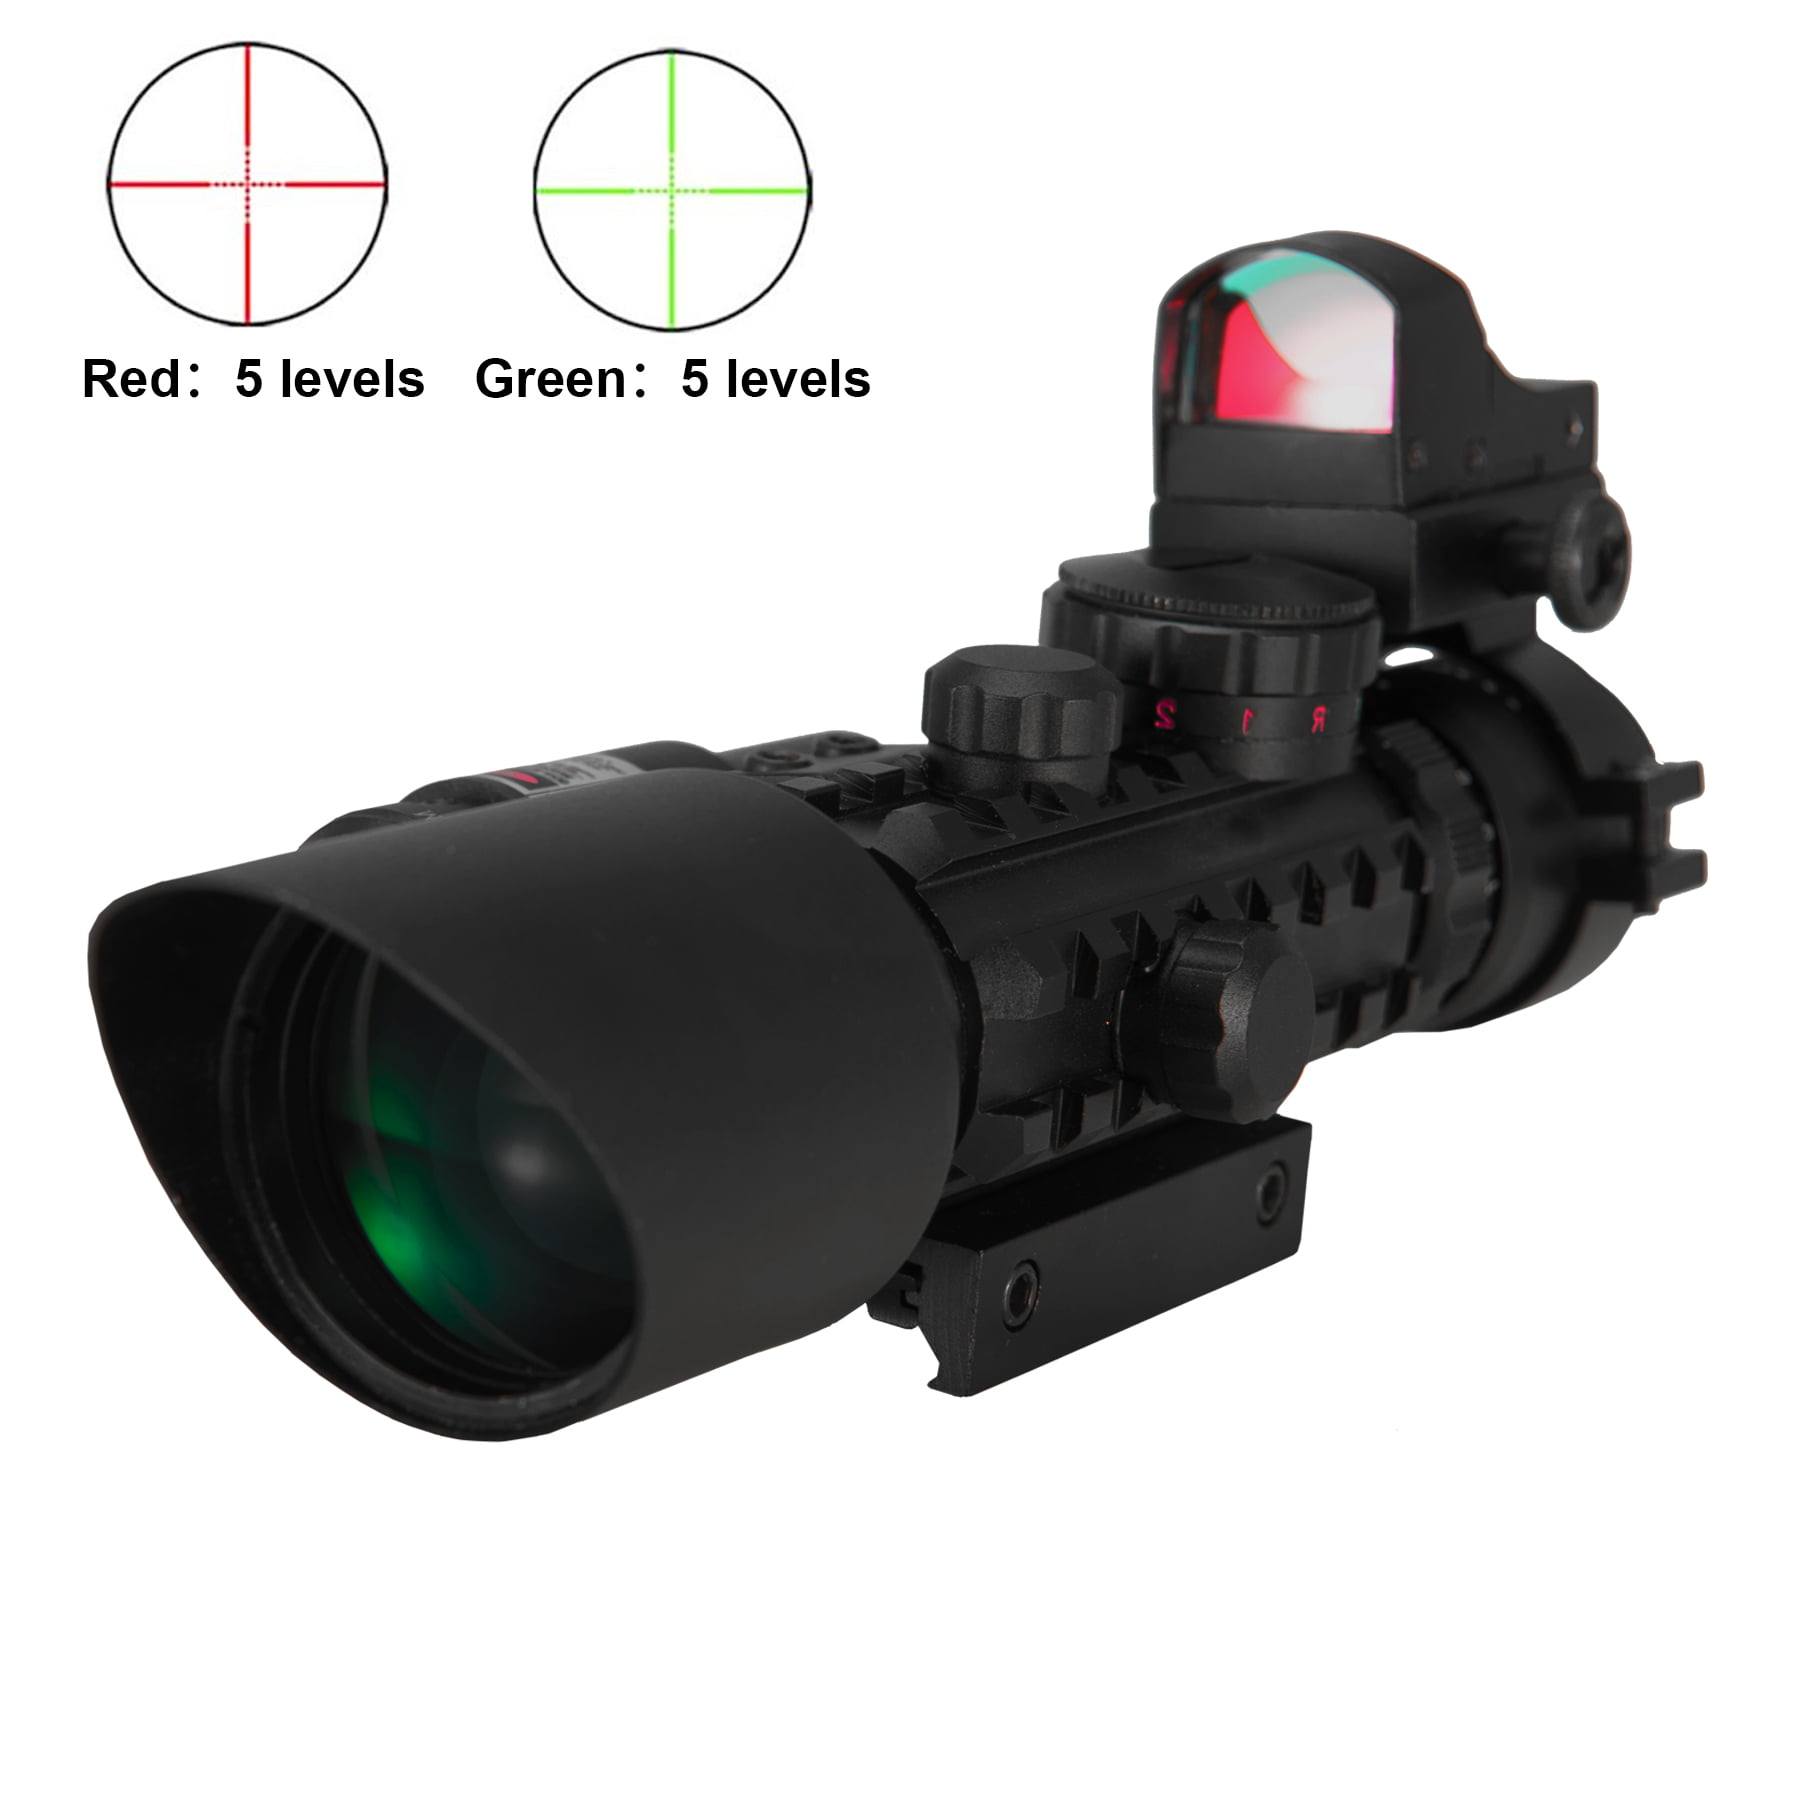 Premium 3-in-1 Combo 3-10x40EG Mil Dot Rangefinder Tactical Riflescope Reticle with Laser Sight and Red Dot Sight... by